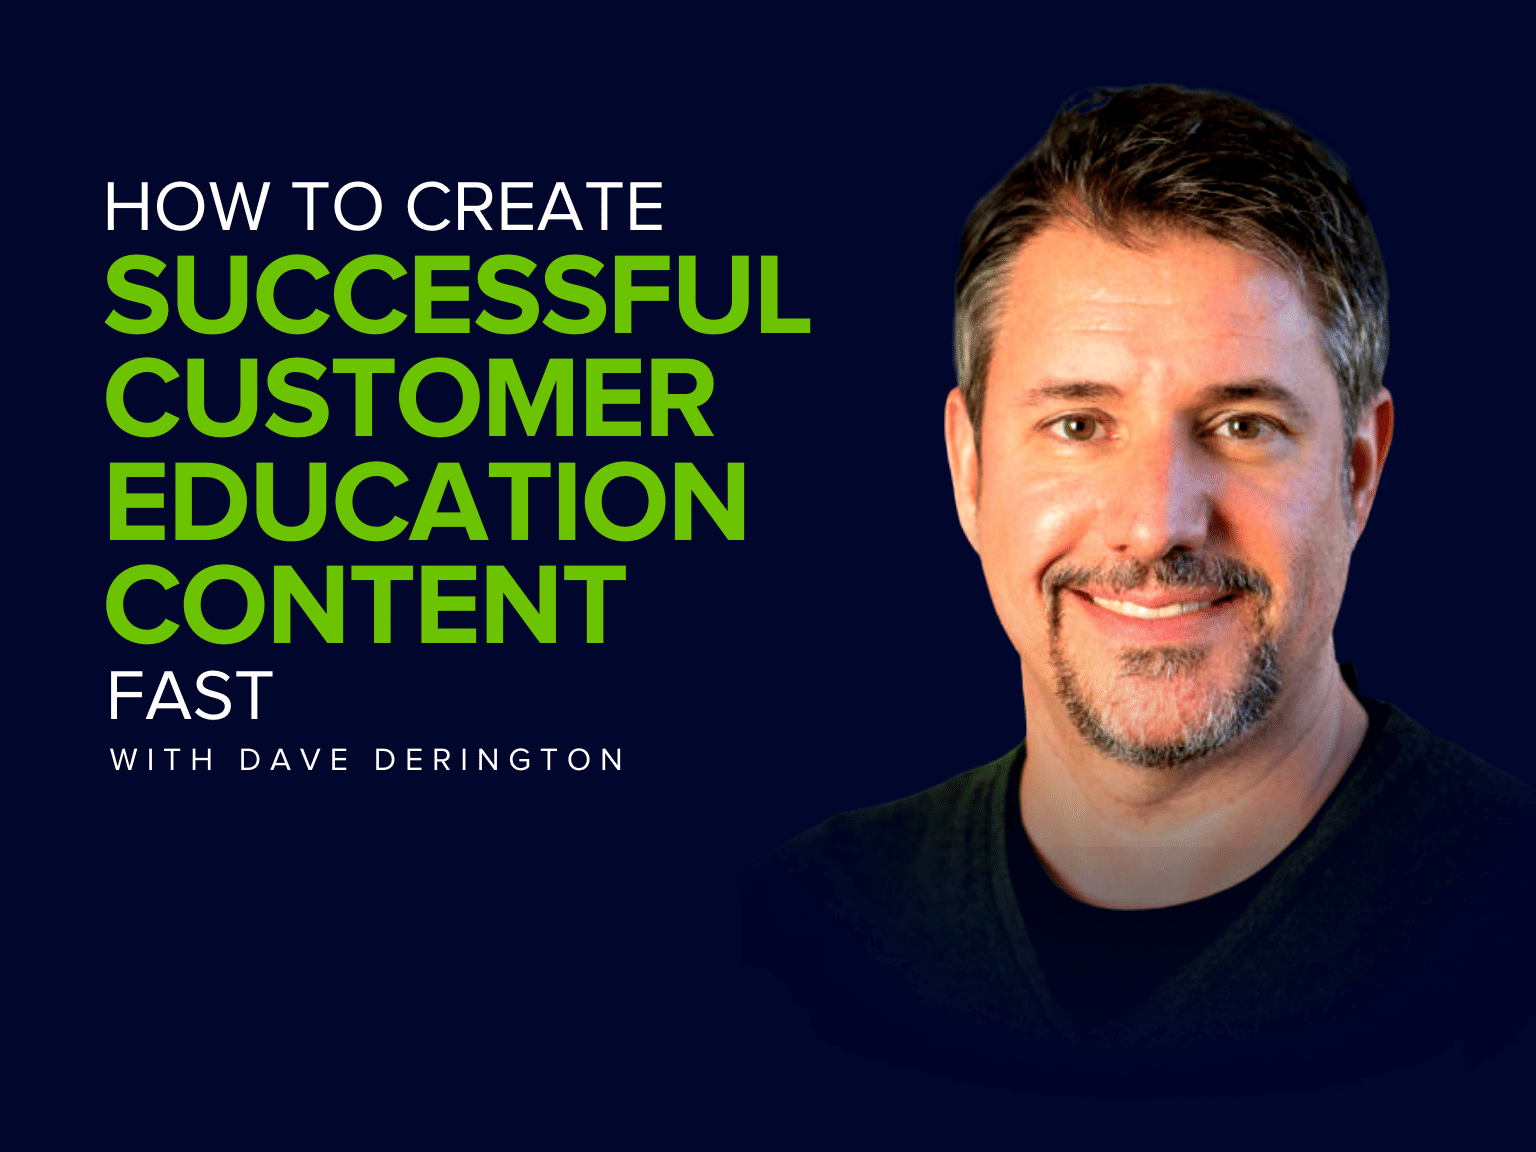 How to Create Successful Customer Education Content Fast with Dave Derington